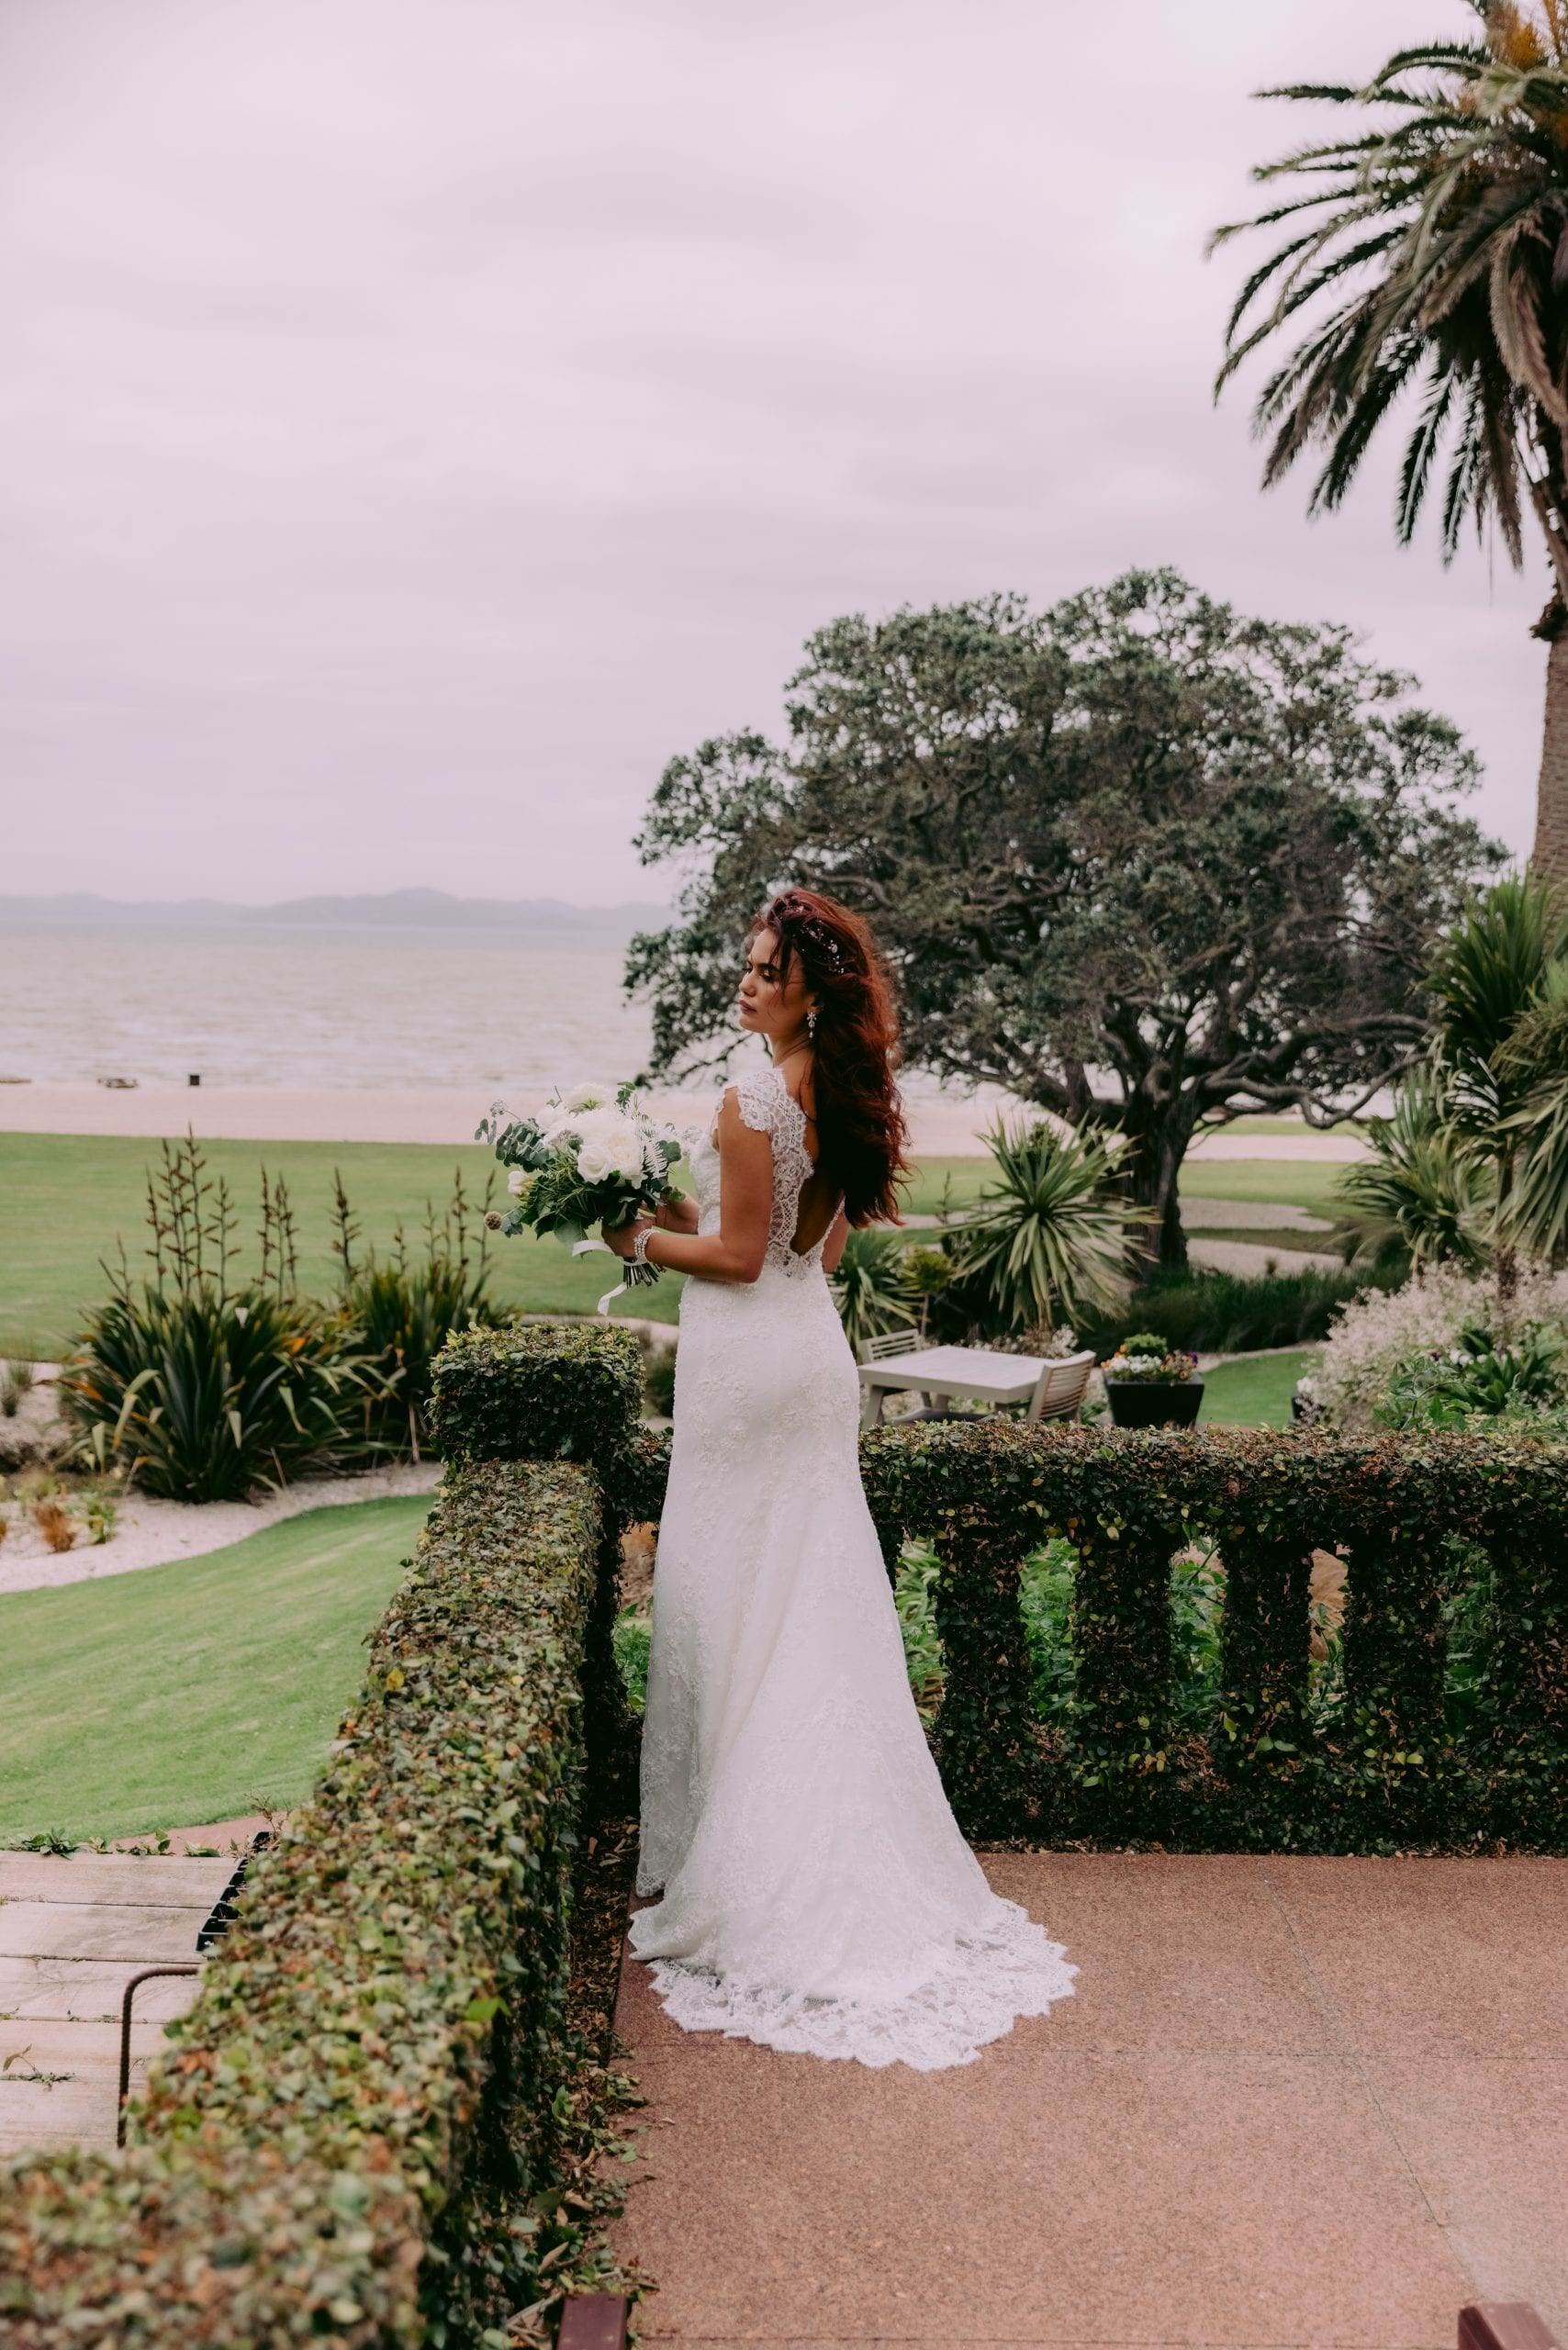 Fallyn Wedding gown from Vinka Design - This wedding dress is a timeless classic. Dramatic scallop lace and deep V-shaped neckline with beautiful low back and mini cap sleeves. This gown is cut in a fit-and-flare design with a side split. Model wearing gown showing side detail.